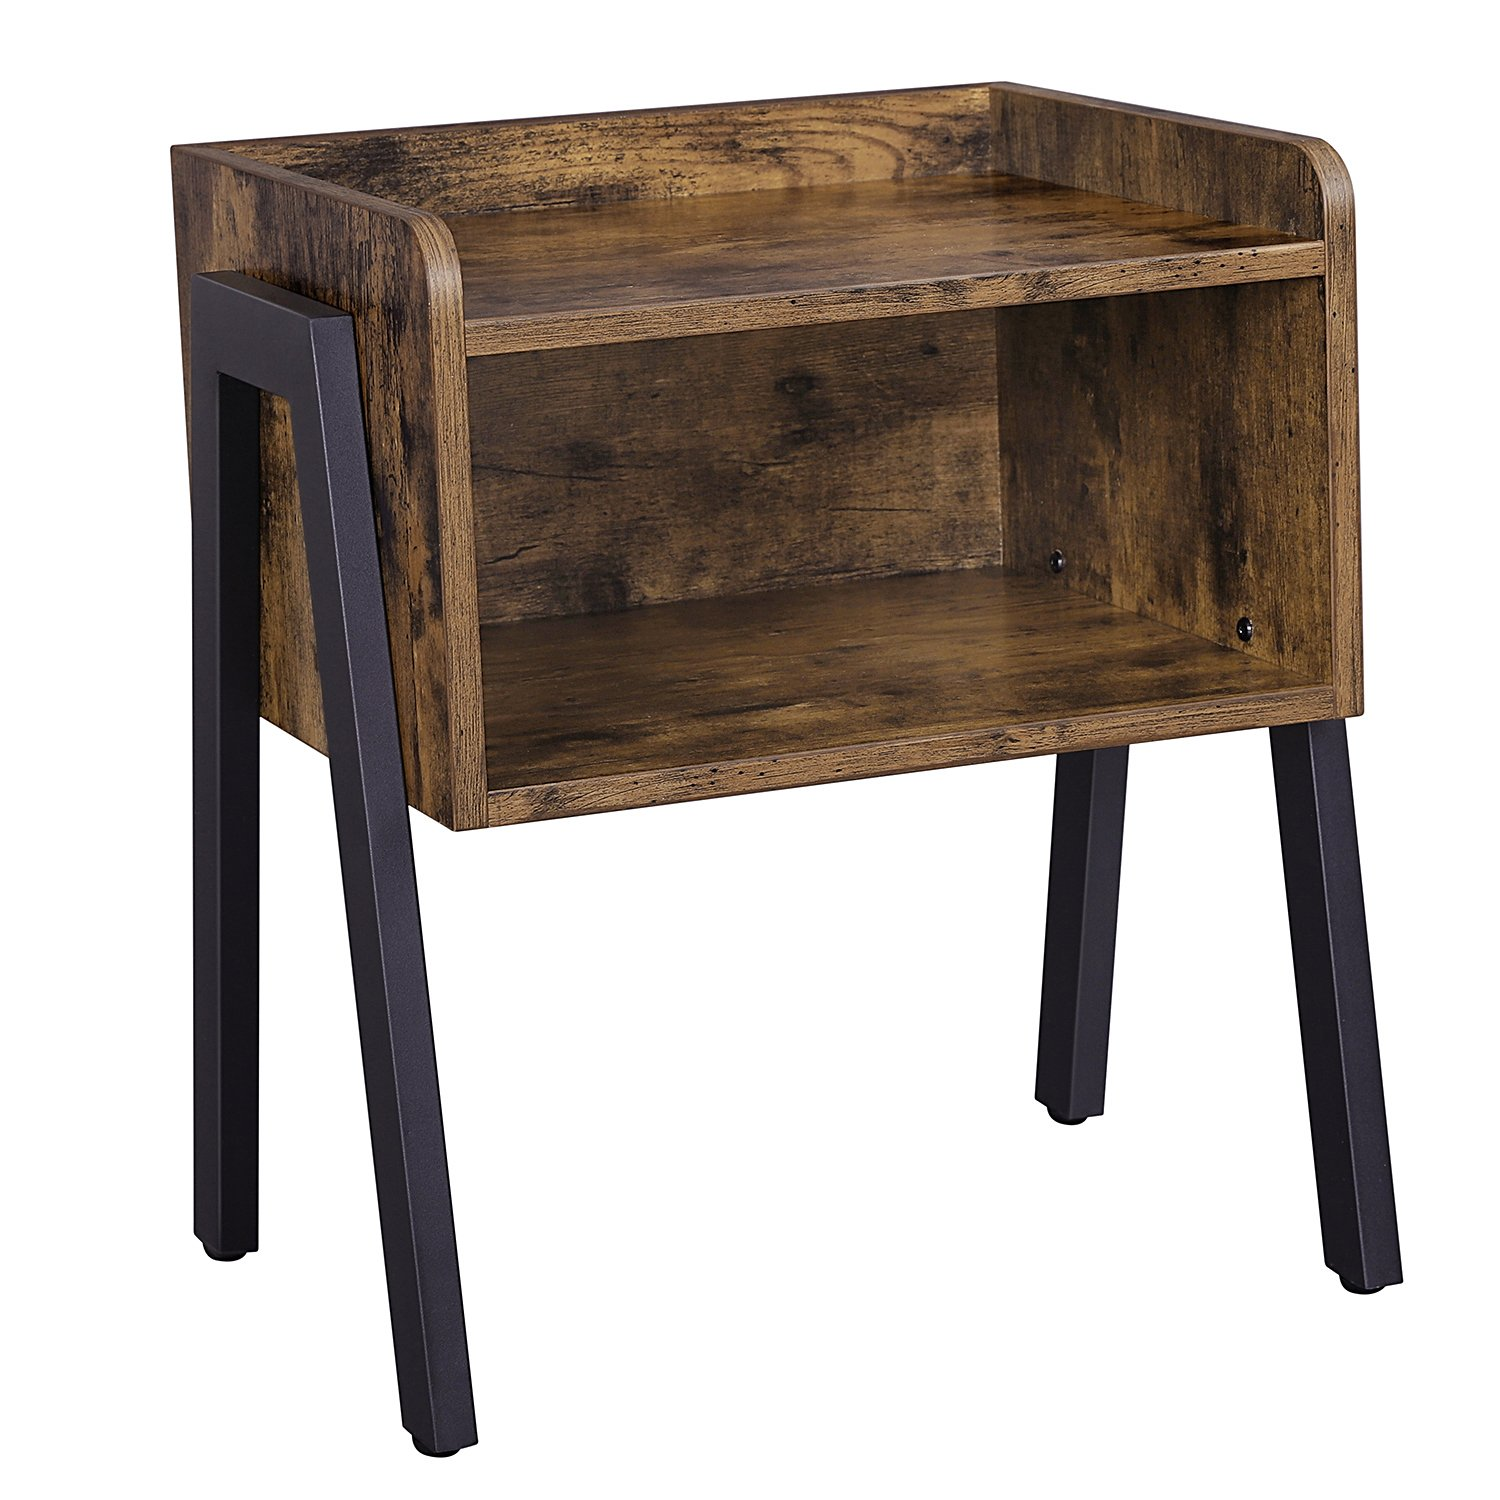 SONGMICS Vintage Side Table, Stackable Nightstand End Table Small Spaces, Coffee Table Open Front Storage Compartment, Wood Look Accent Furniture Metal Frame ULET54X